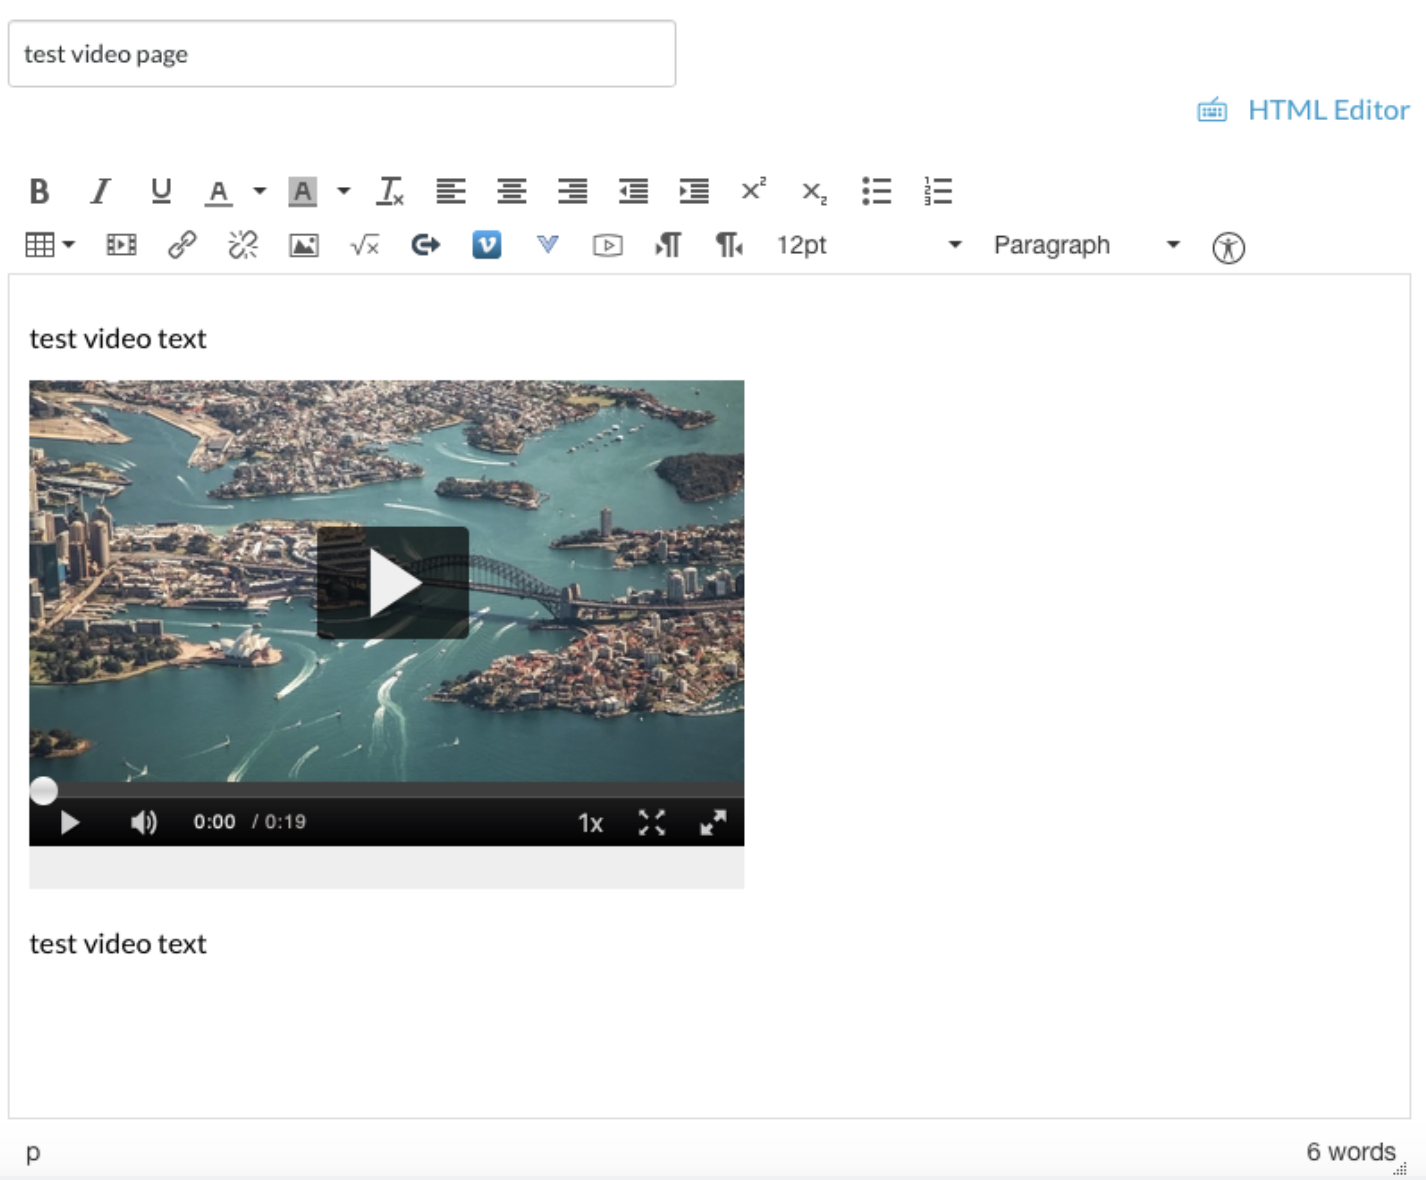 Screenshot of test video page